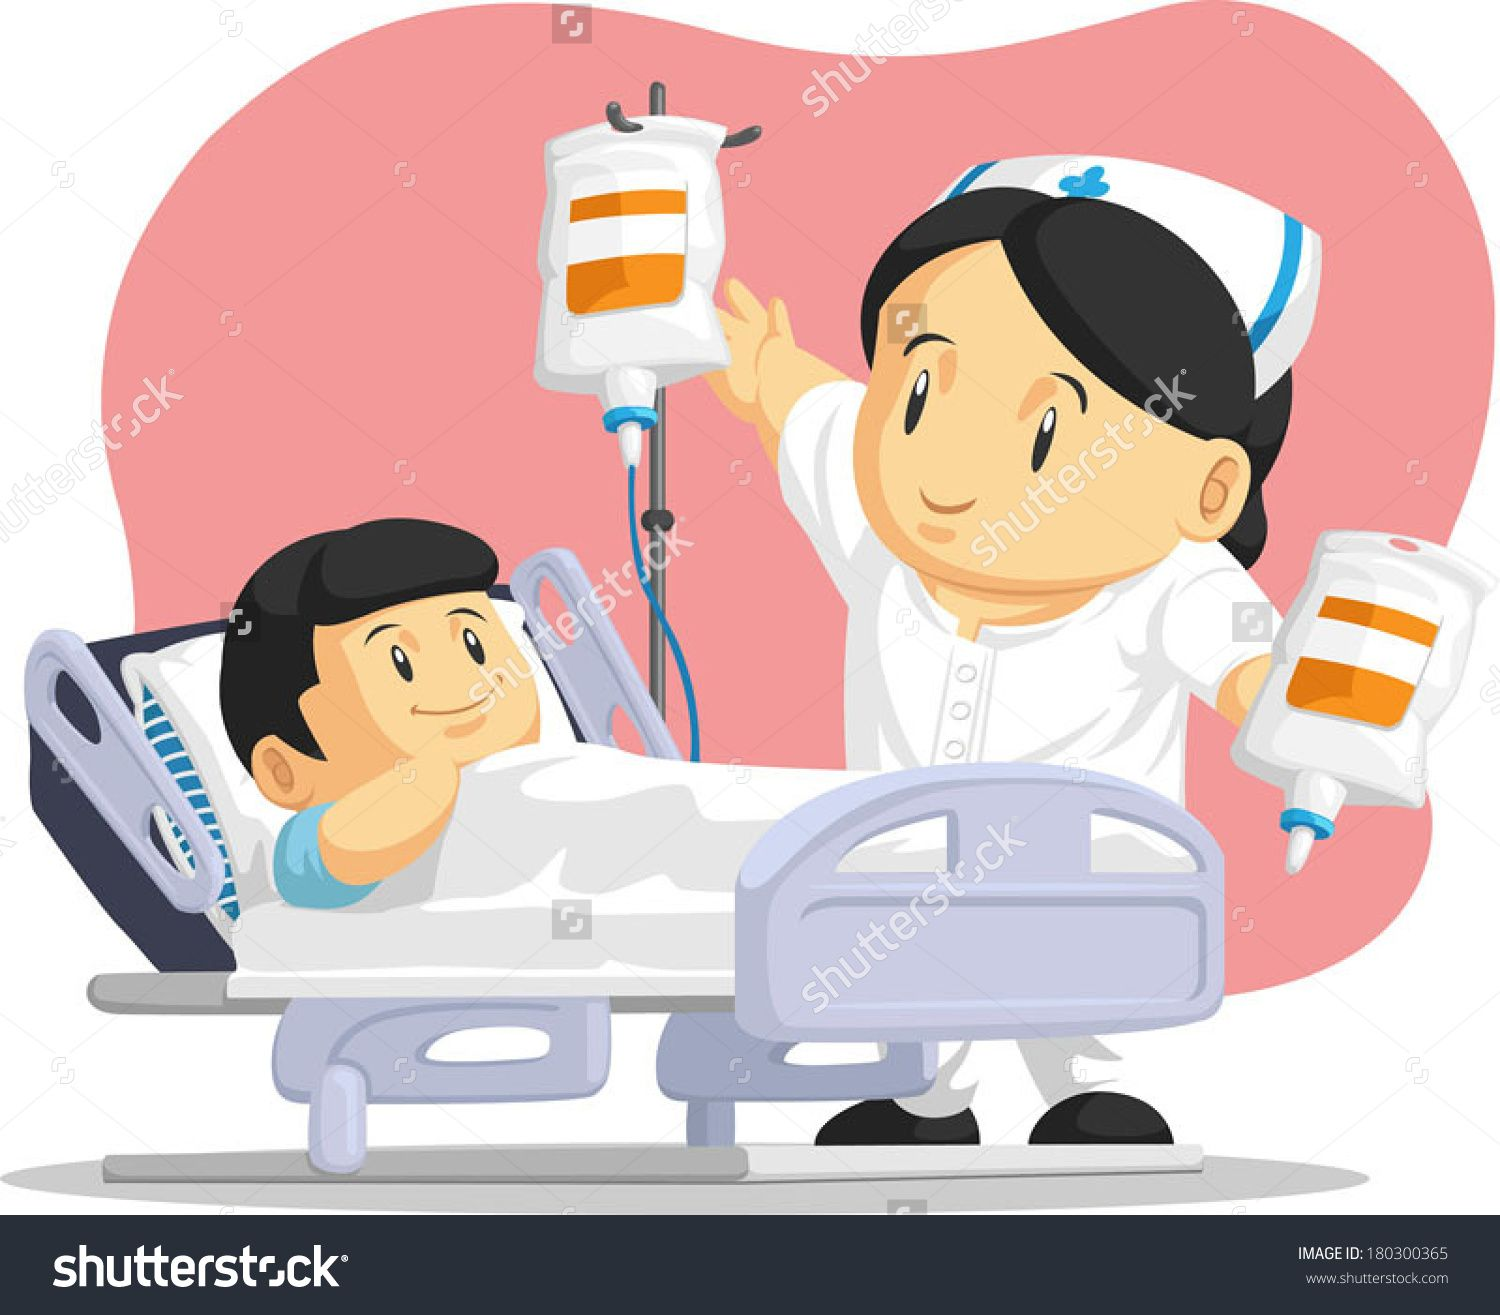 Nurse clipart children's. Cartoon of helping child